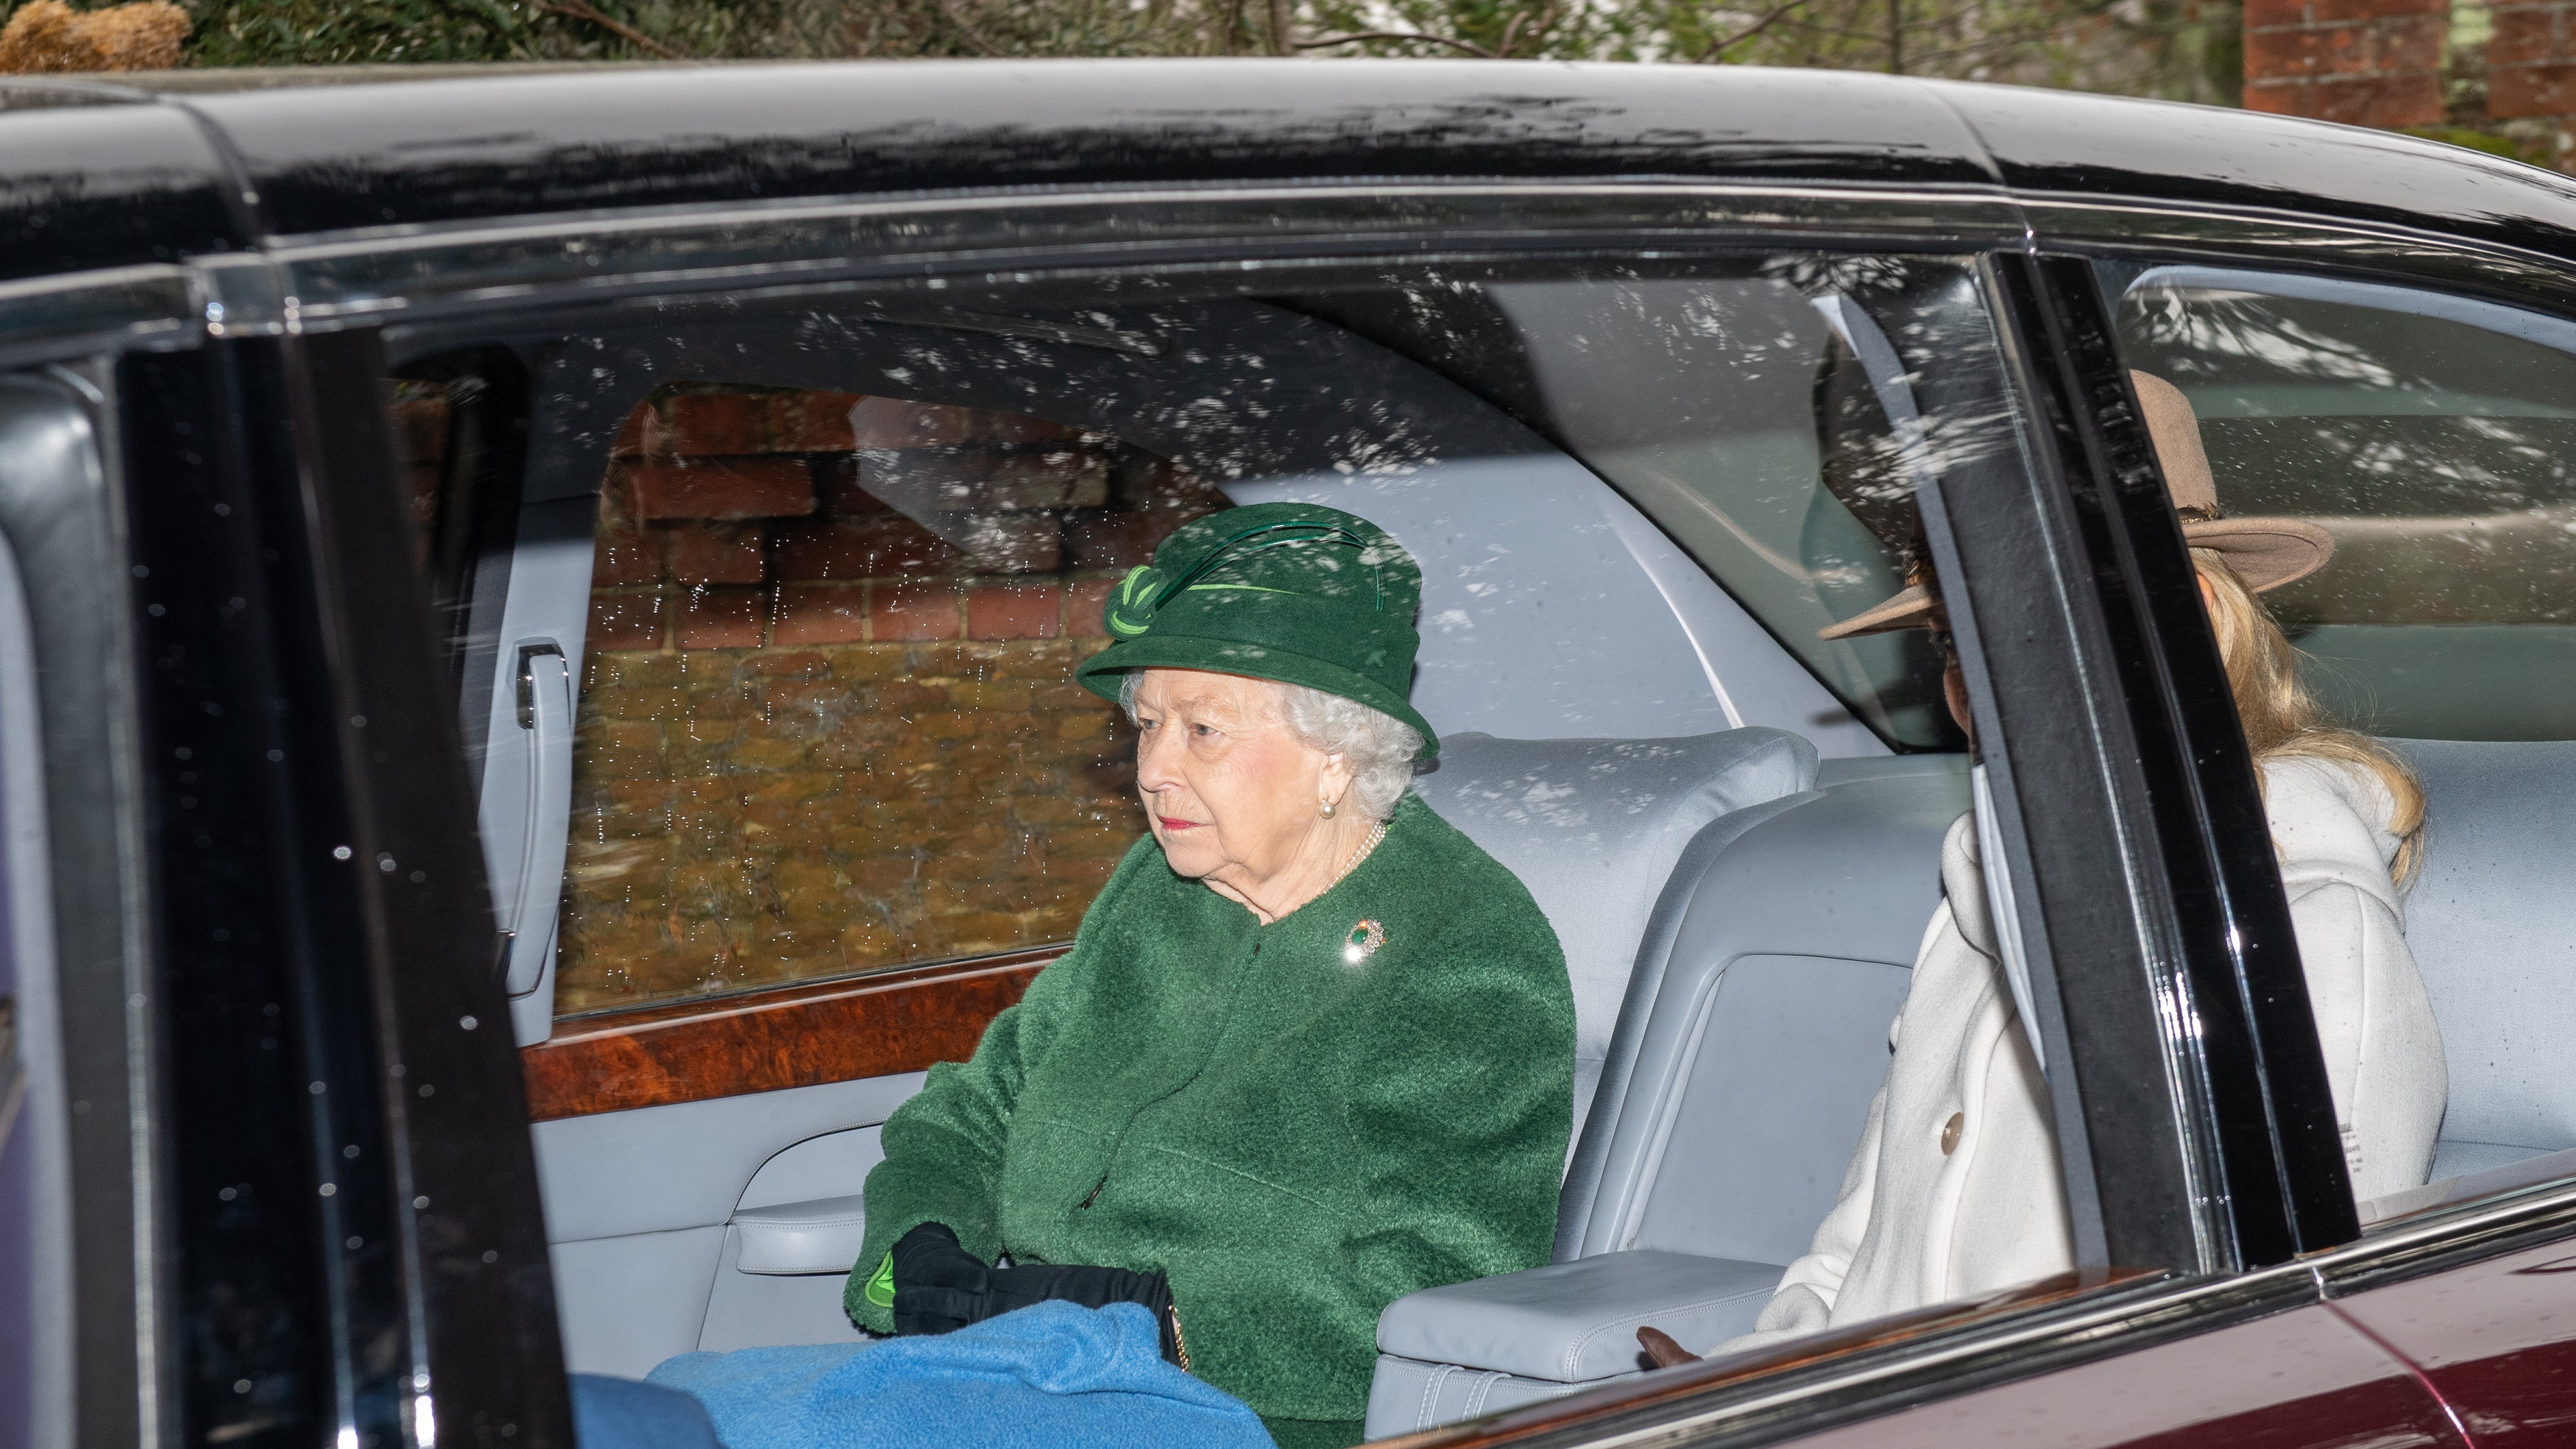 Queen Britain's 'bumpy' year in Christmas message